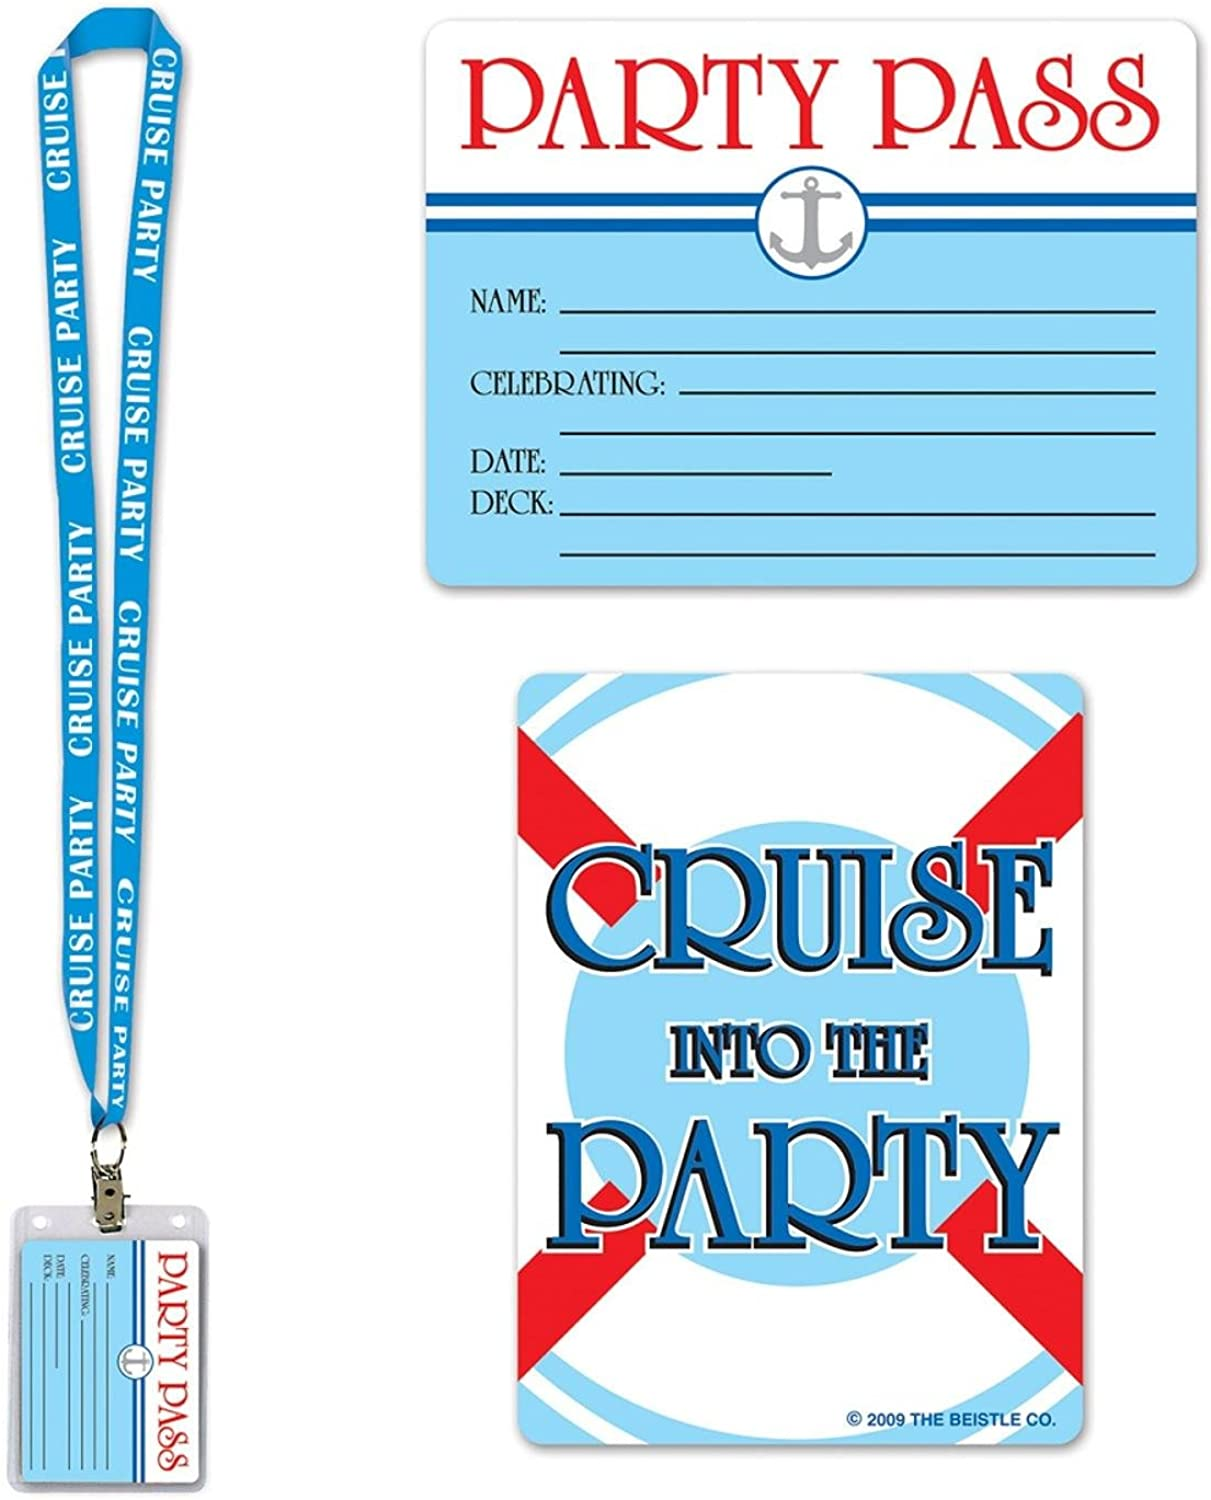 Pack of 12 Light bluee Cruise Ship Party Pass Lanyard and Card Holder 25